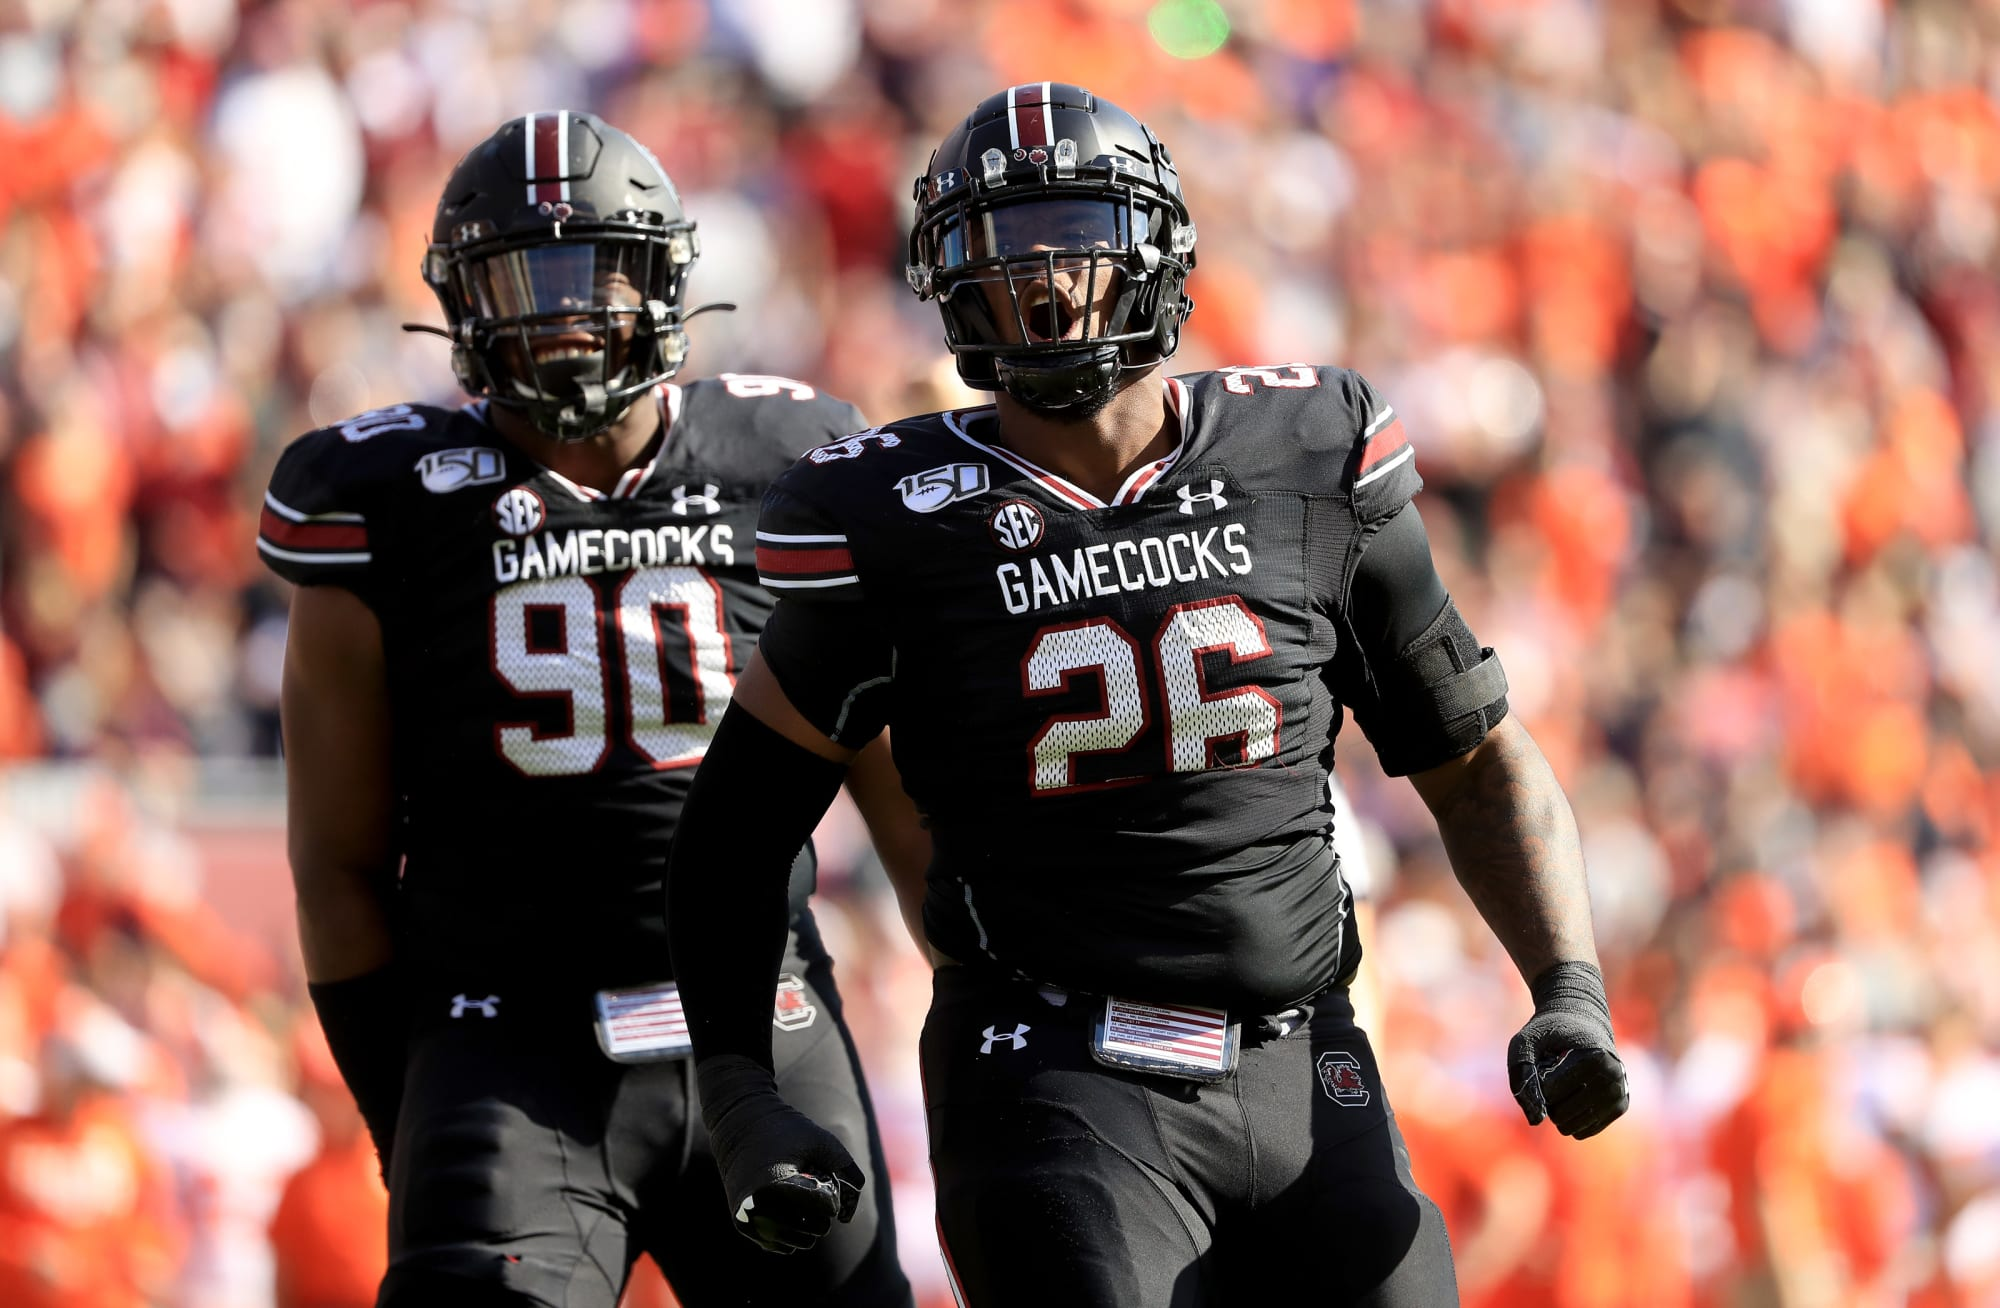 South Carolina football: 3 questions at defensive line